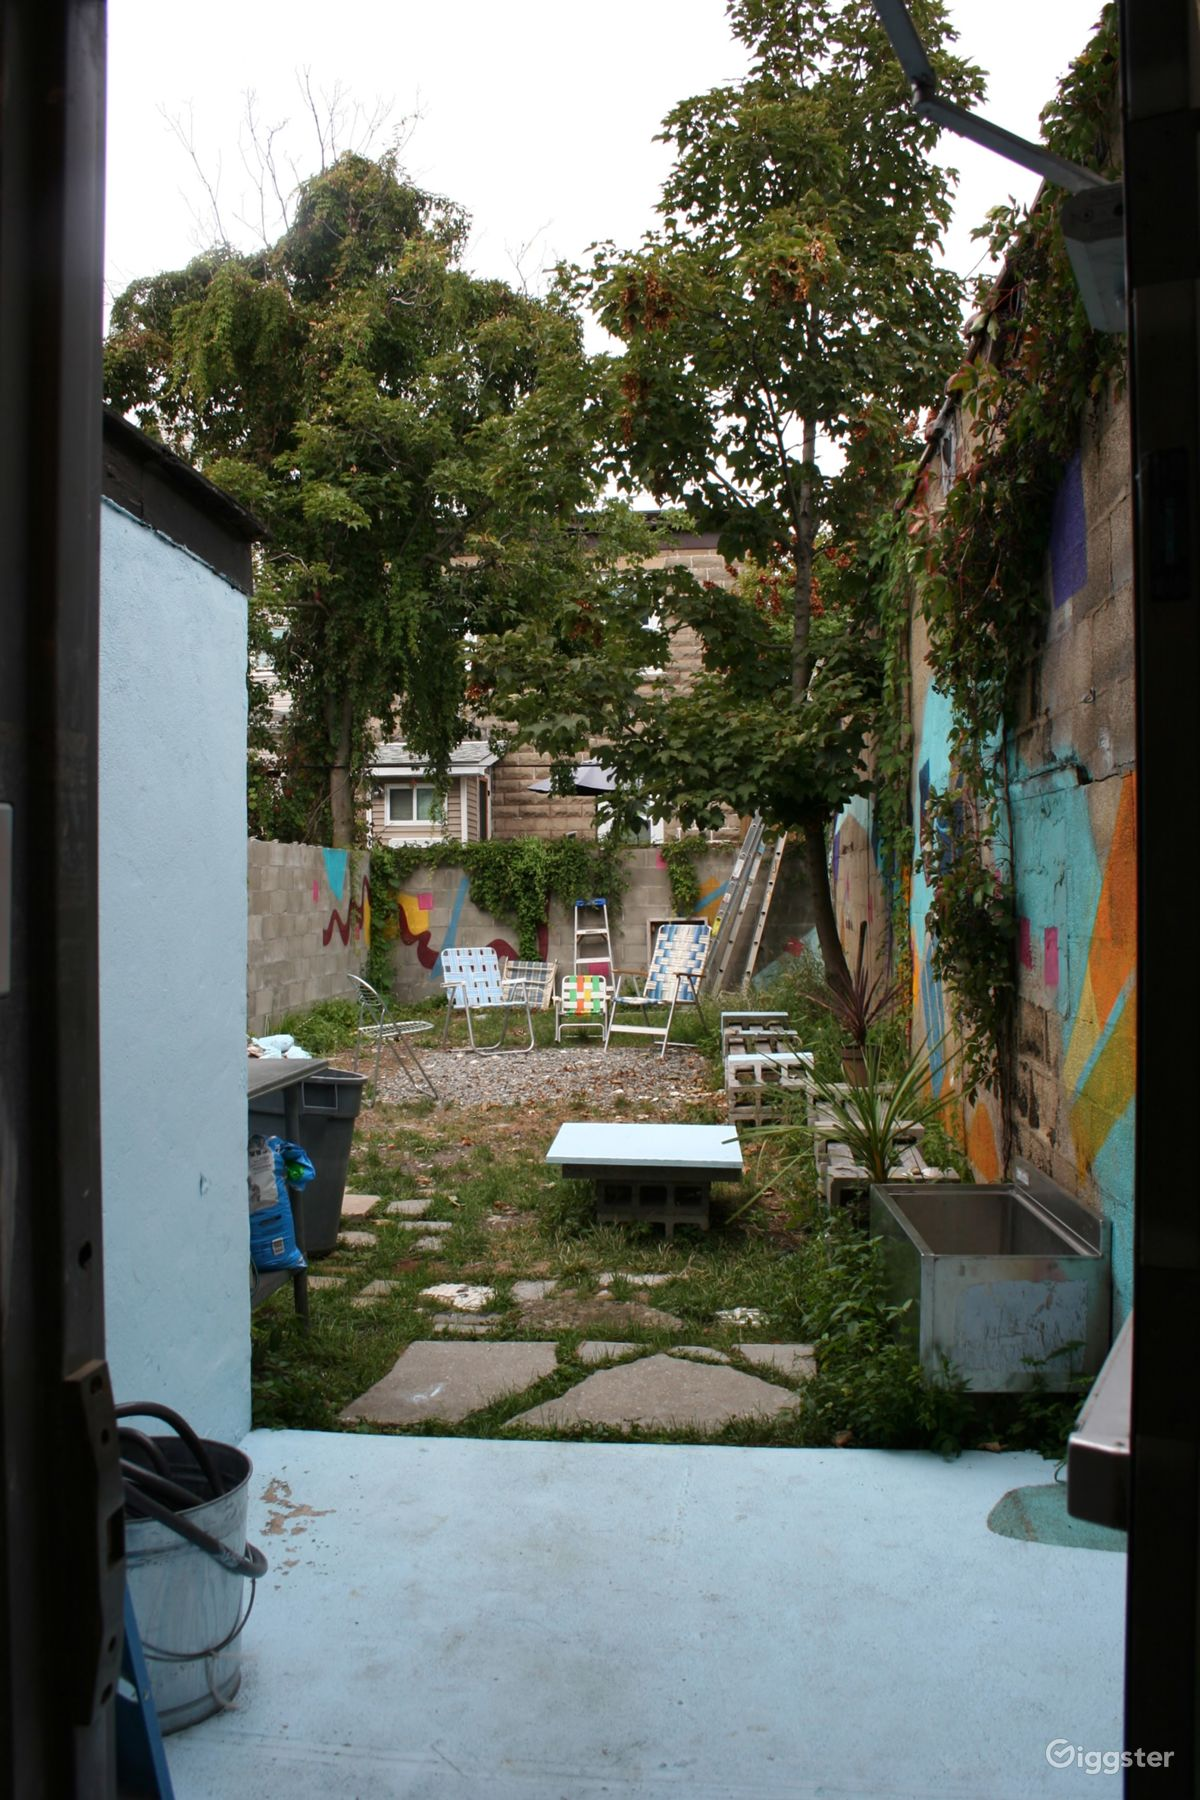 Beautiful Rent The House(residential) Backyard With Colorful Paintings On Walls For  Film/photoshoot